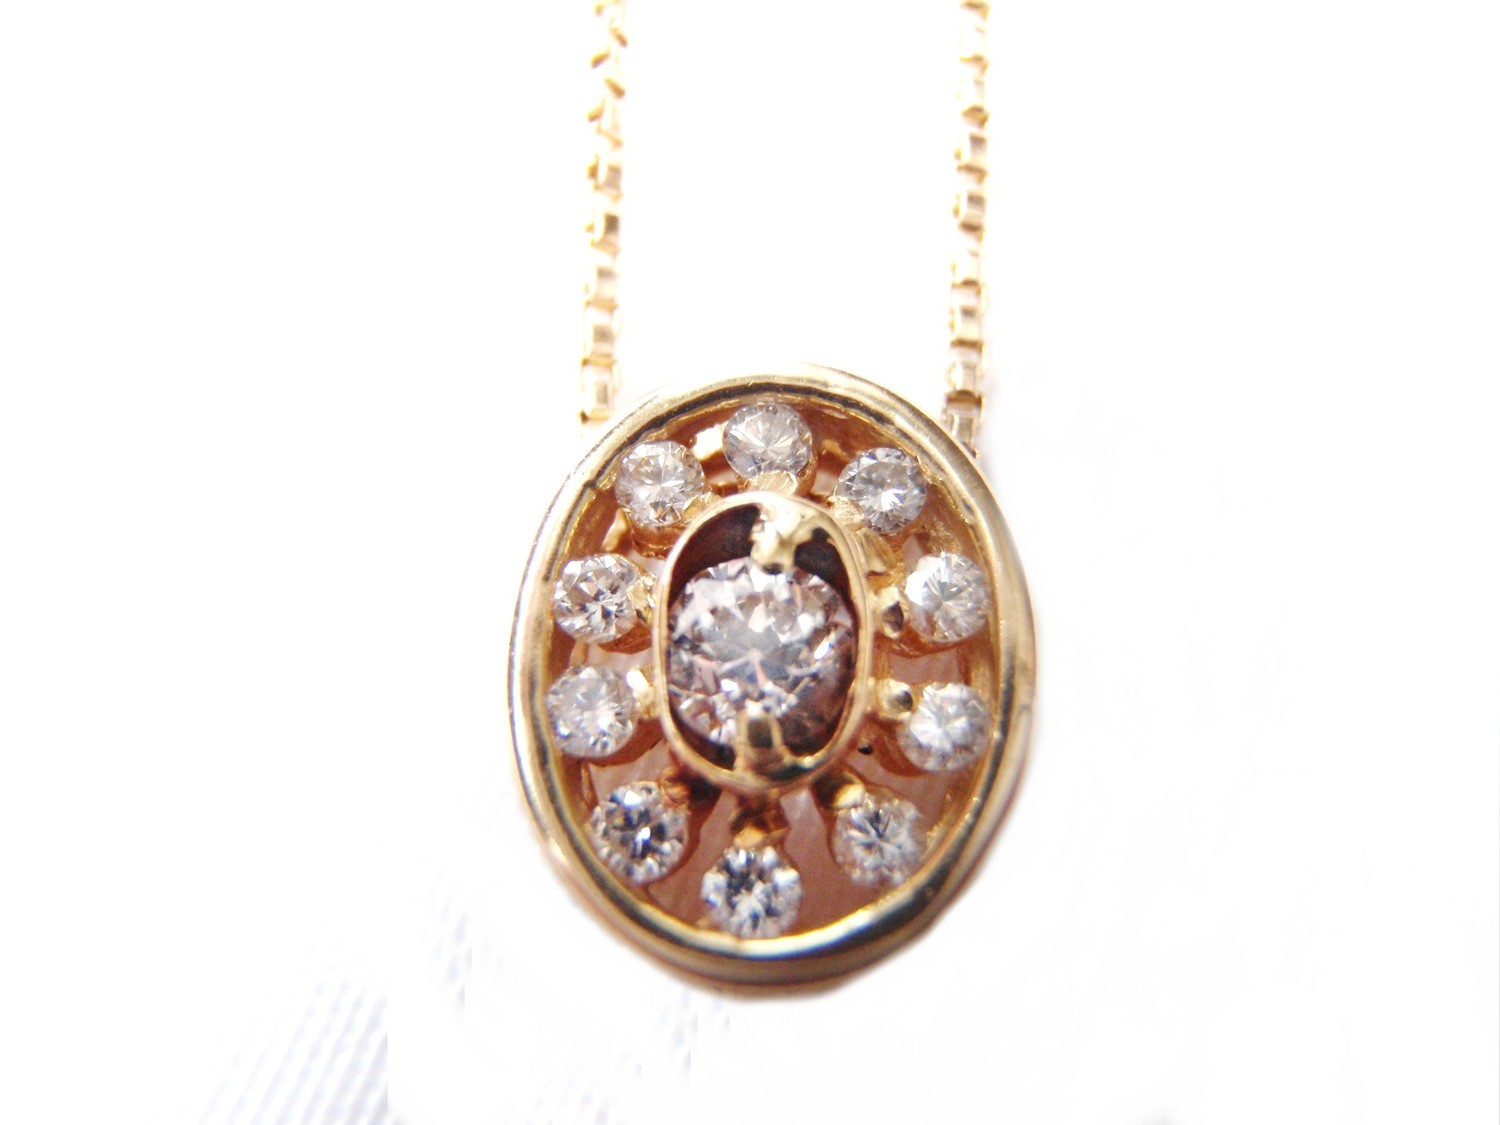 11 Diamond Gold Pendant 14k Gold Necklace with Chain